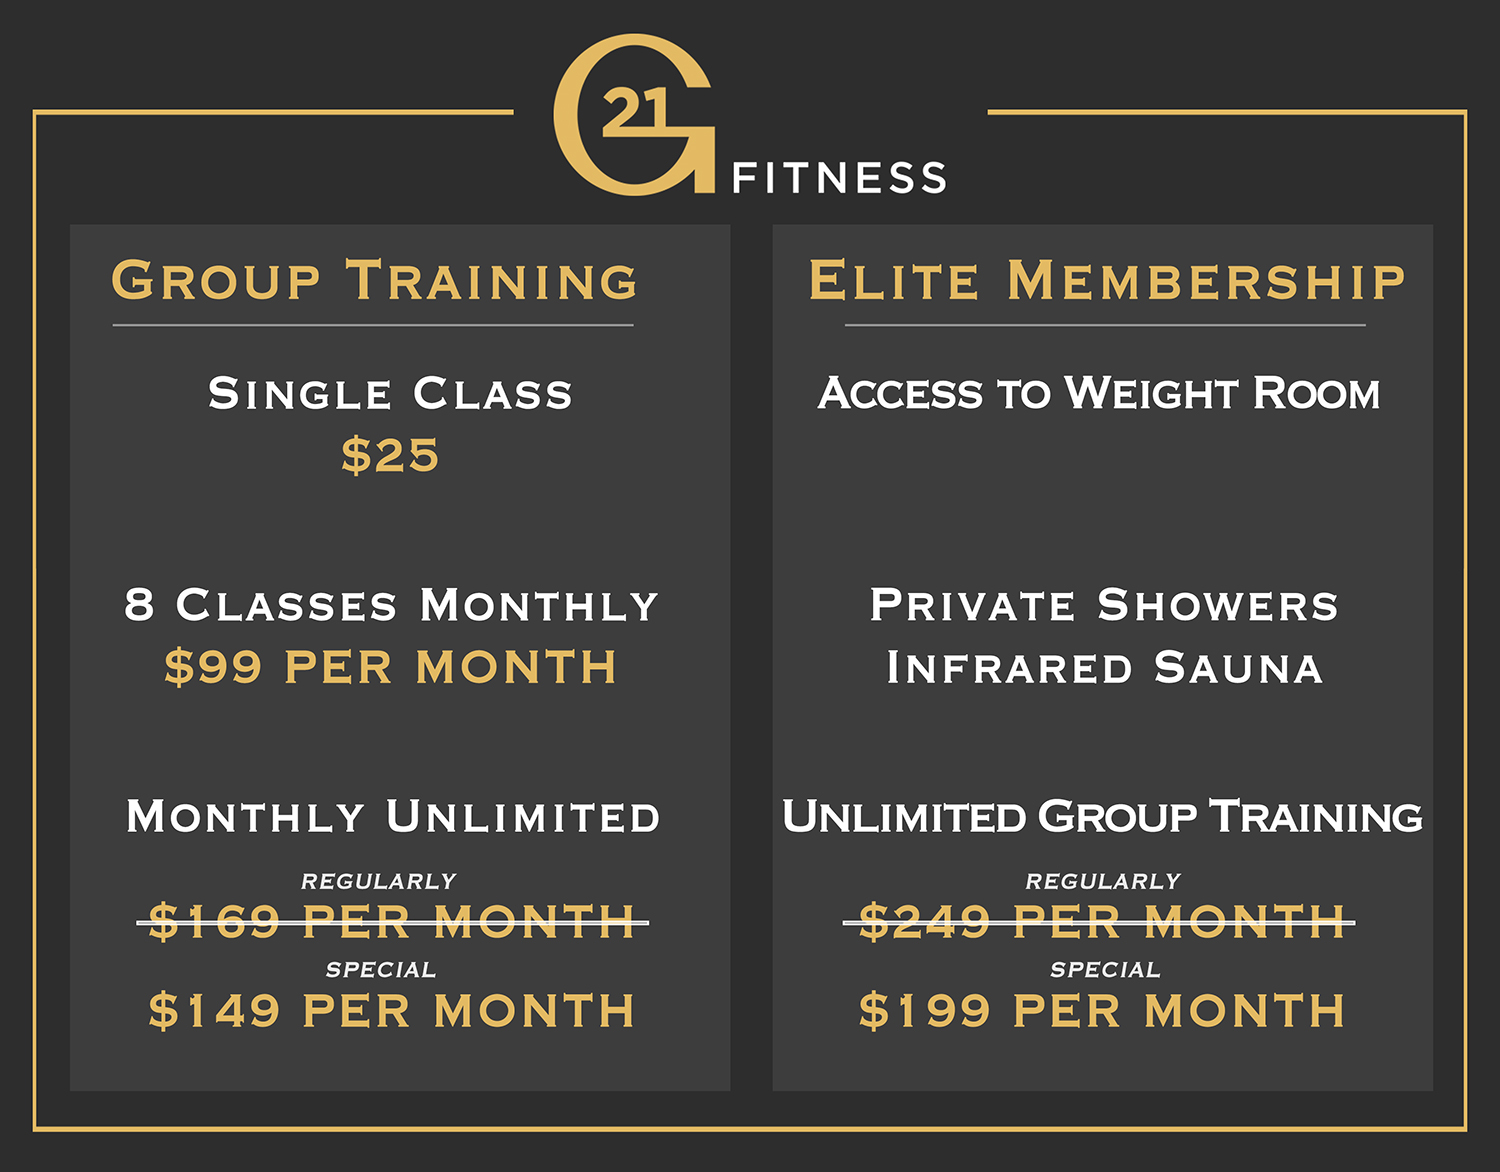 G21 Fitness Pricing Menu Rates